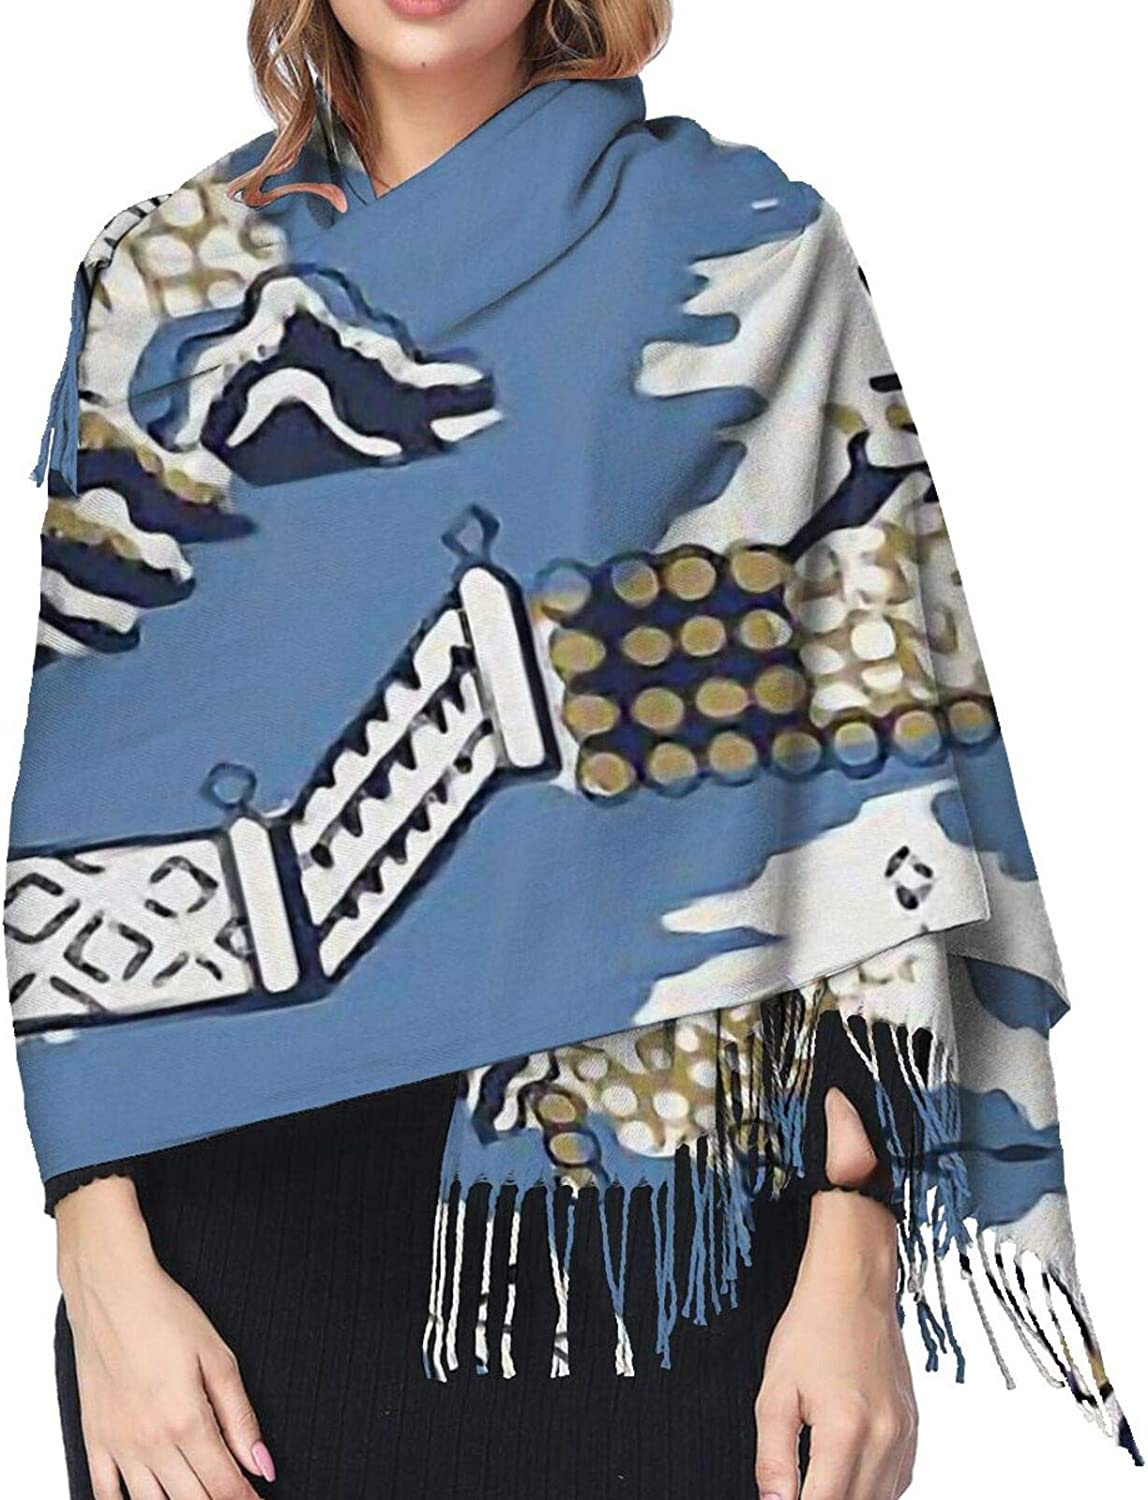 Blue & White China Blue Willow Cashmere Scarf Fashion Long Shawl with Fringed Edges Super Soft Warm Cozy Light Blanket Scarves Wrap Ultra Warm Winter Accessories Gifts For Men And Women